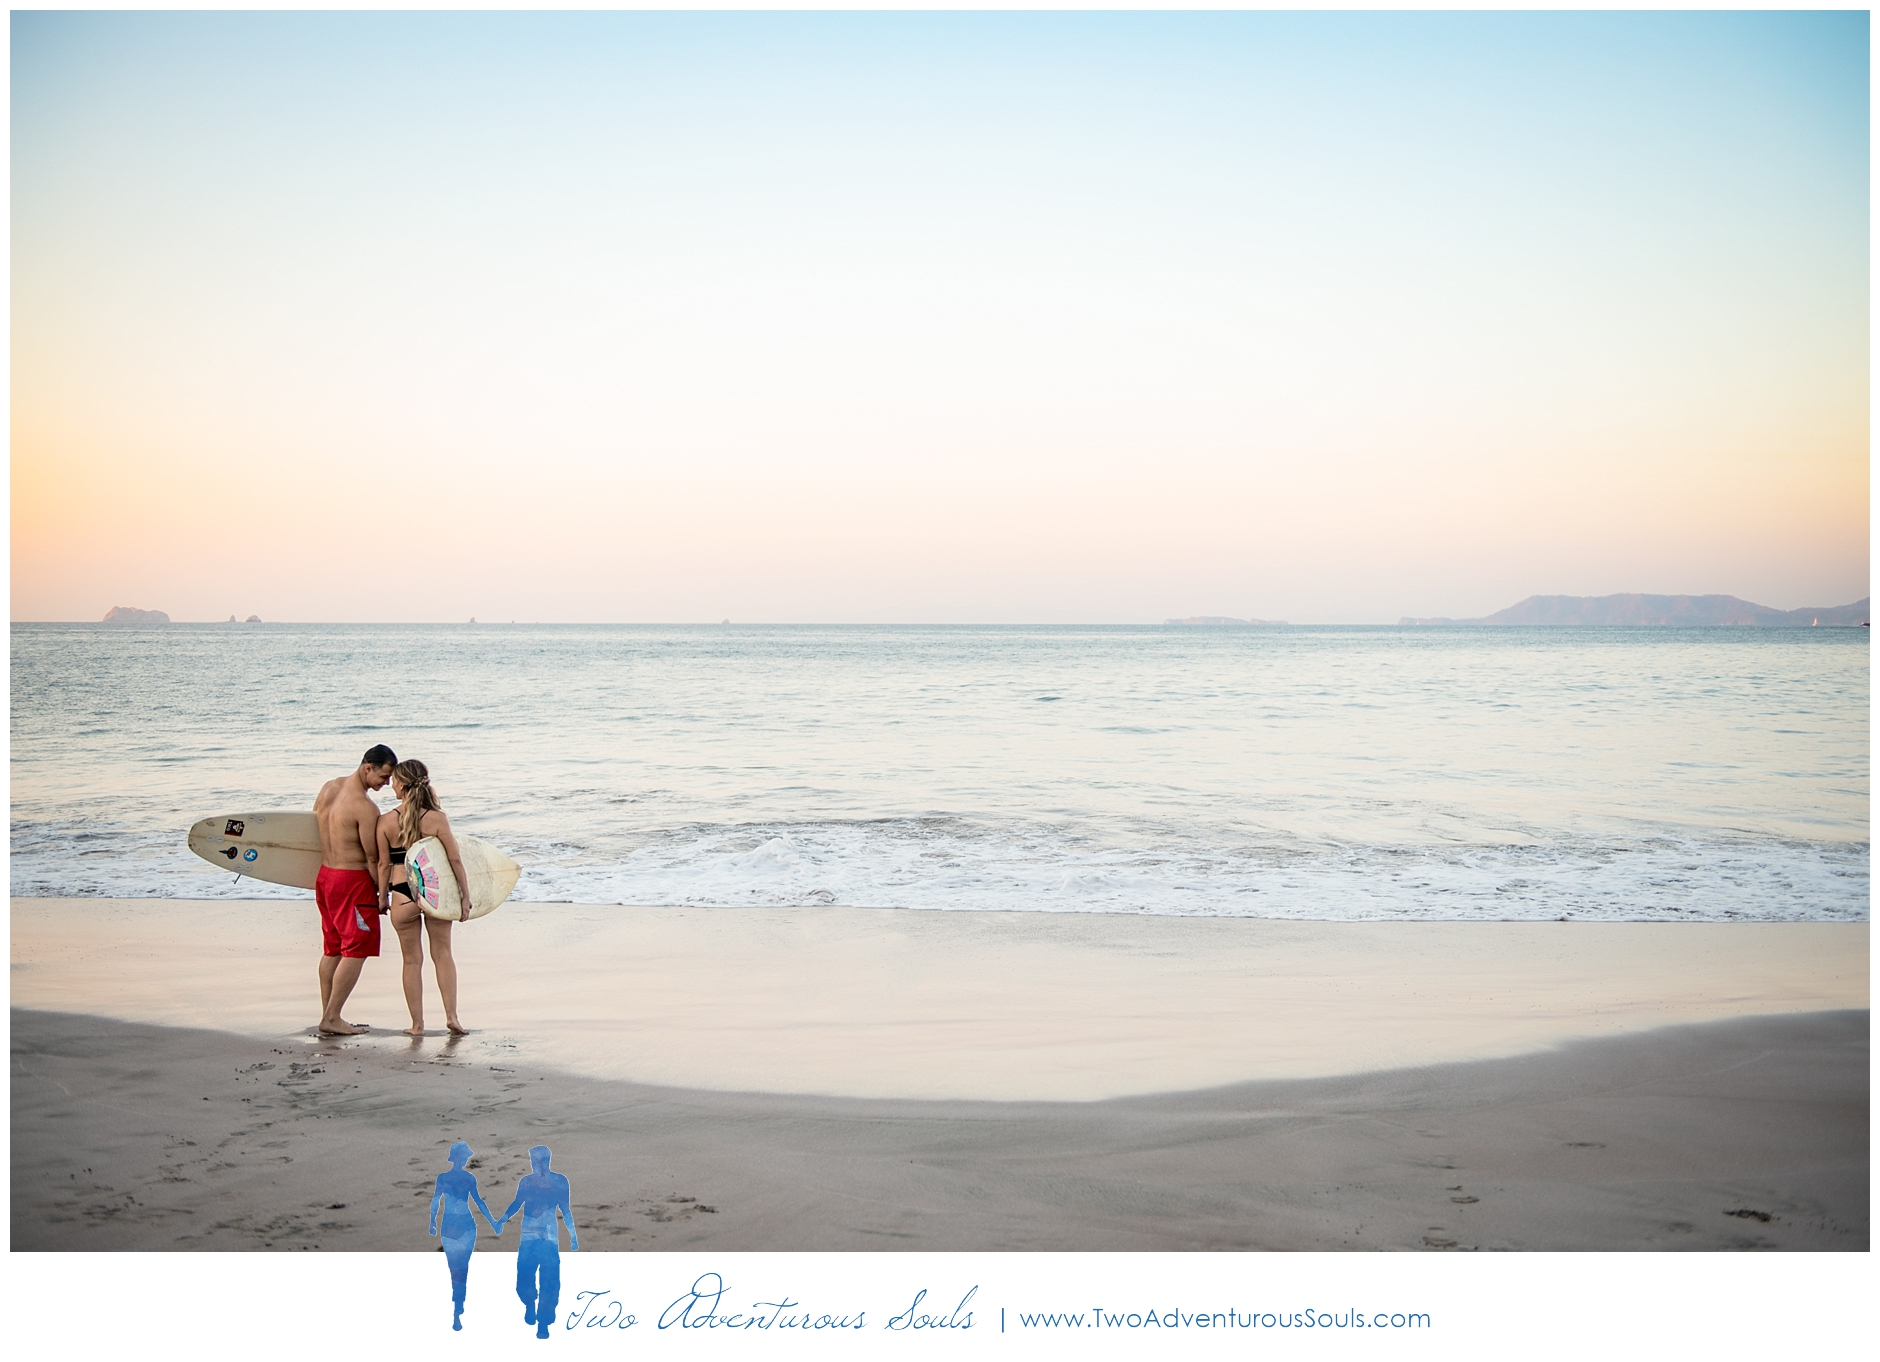 Engagement session in Costa Rica, Playa Minas, Costa Rica Wedding Photographers - Couples Surfing engagement